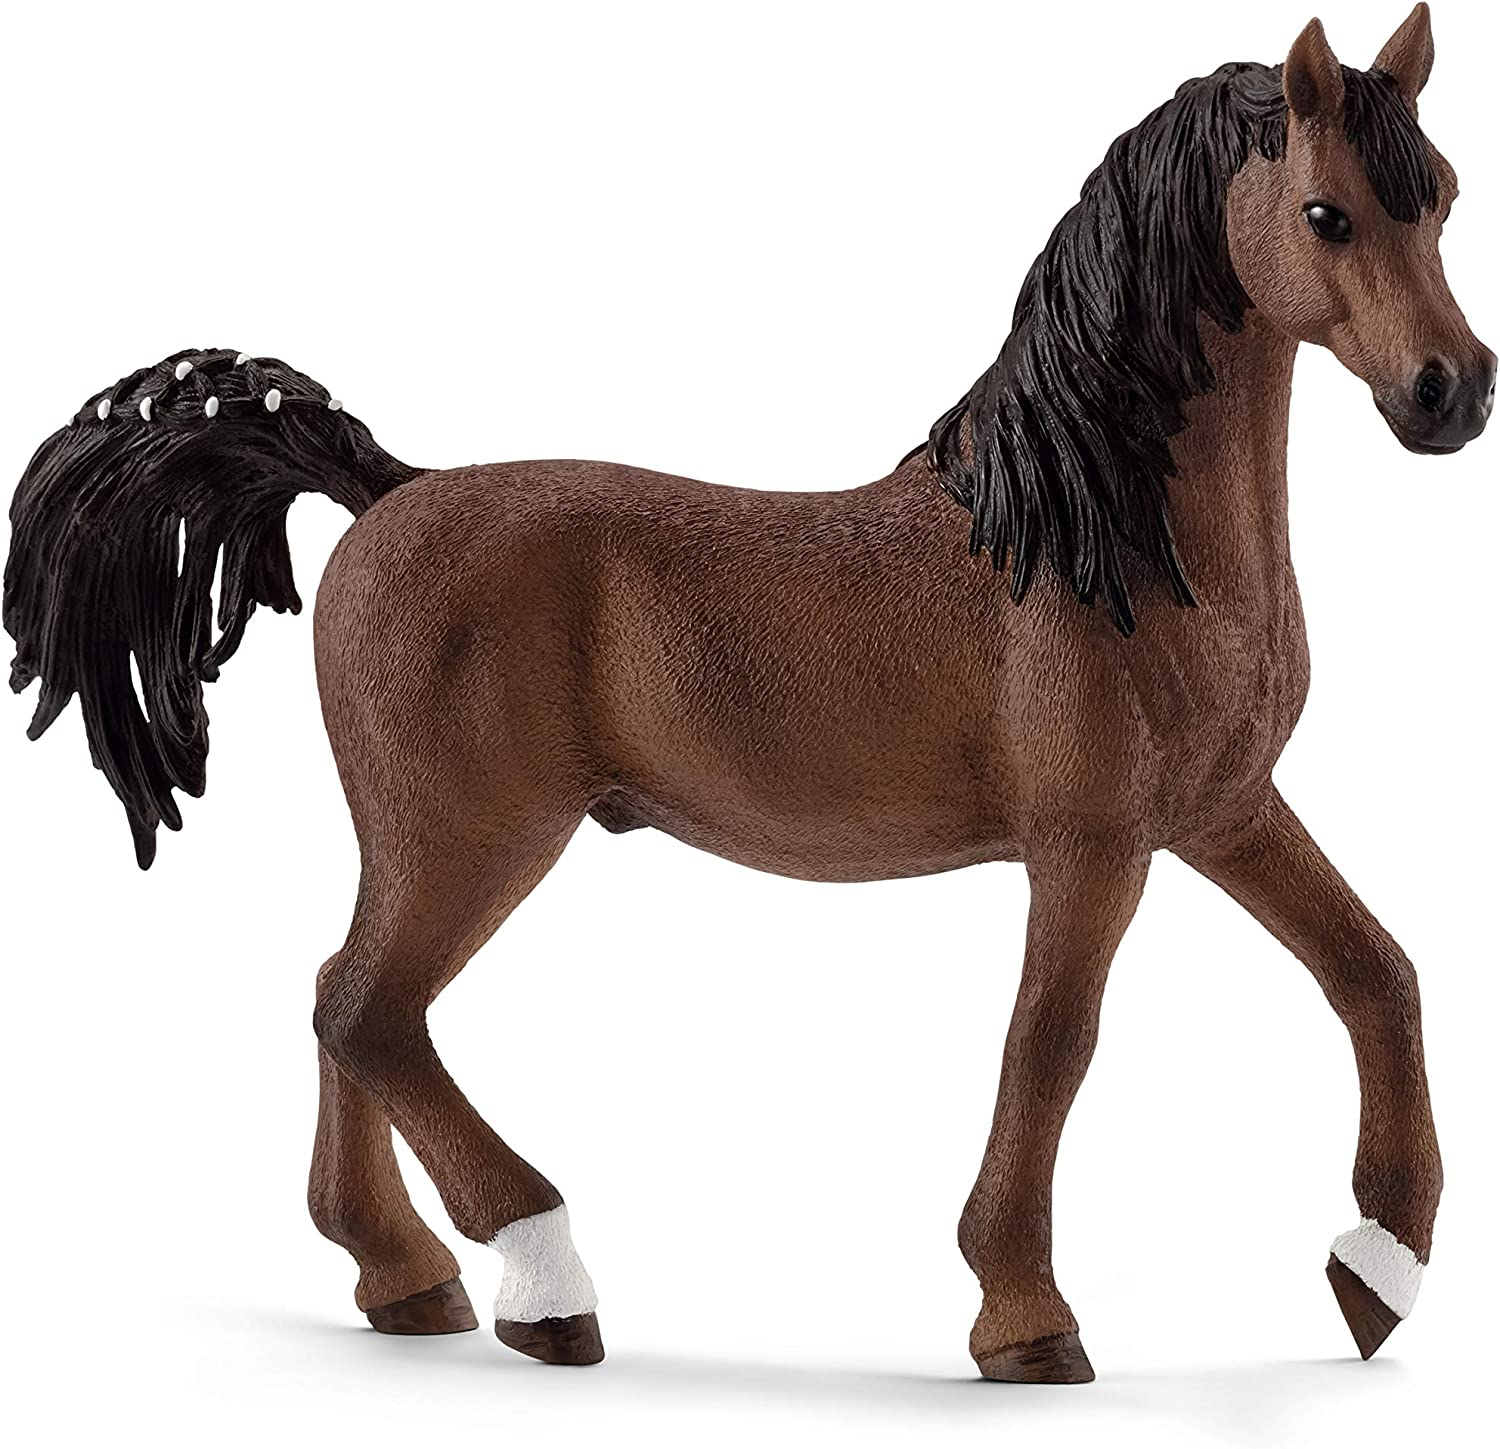 Schleich- Figura de Caballo, Semental Árabe, Color Marrón, 10,4cm